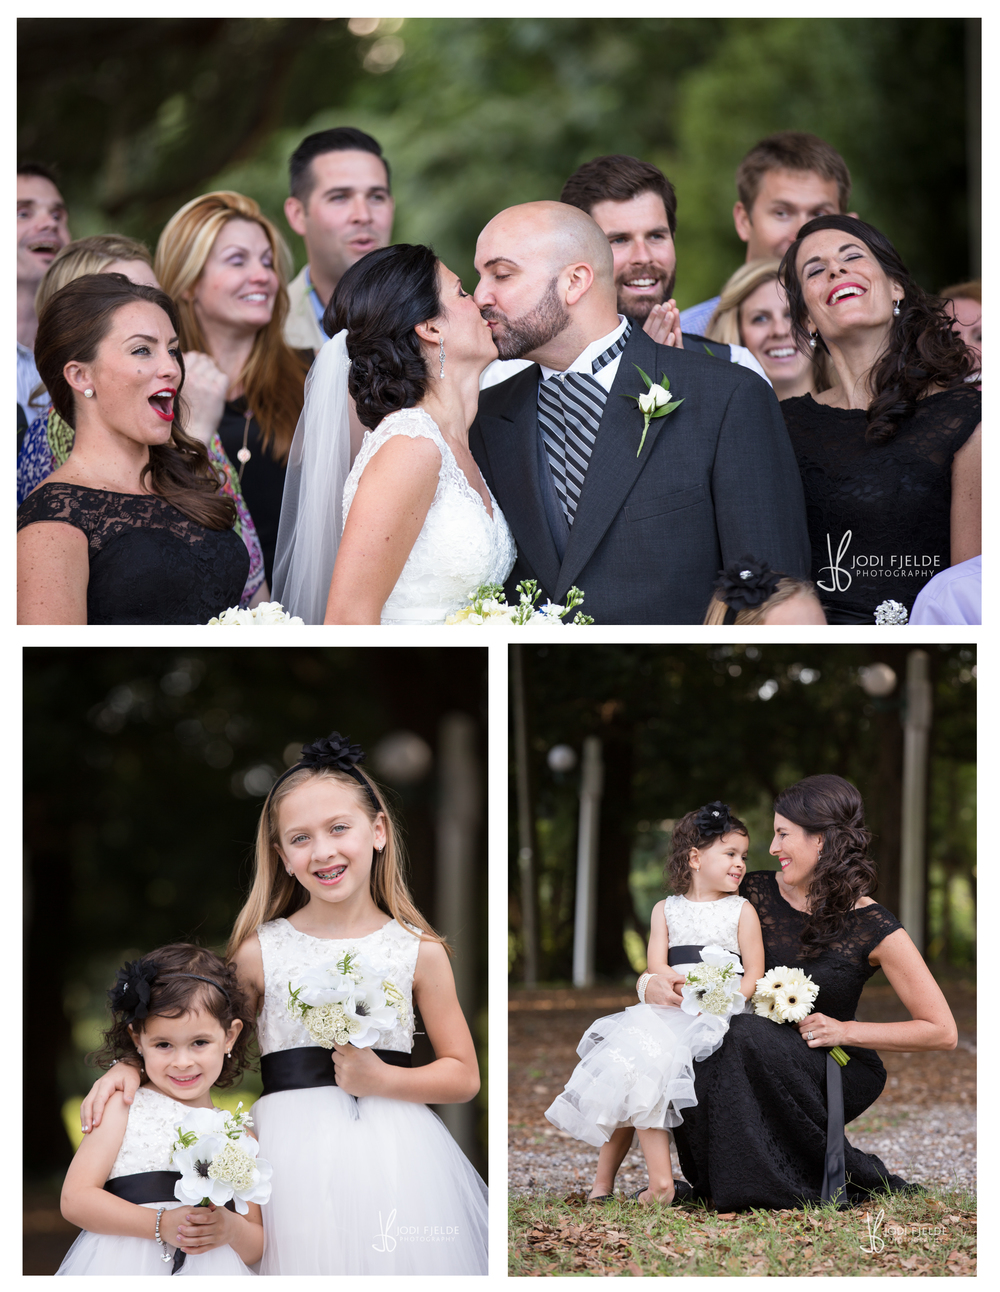 Highland_Manor_Apopka_Florida_wedding_Jackie_&_Tim_photography_jodi_Fjelde_photography-18.jpg